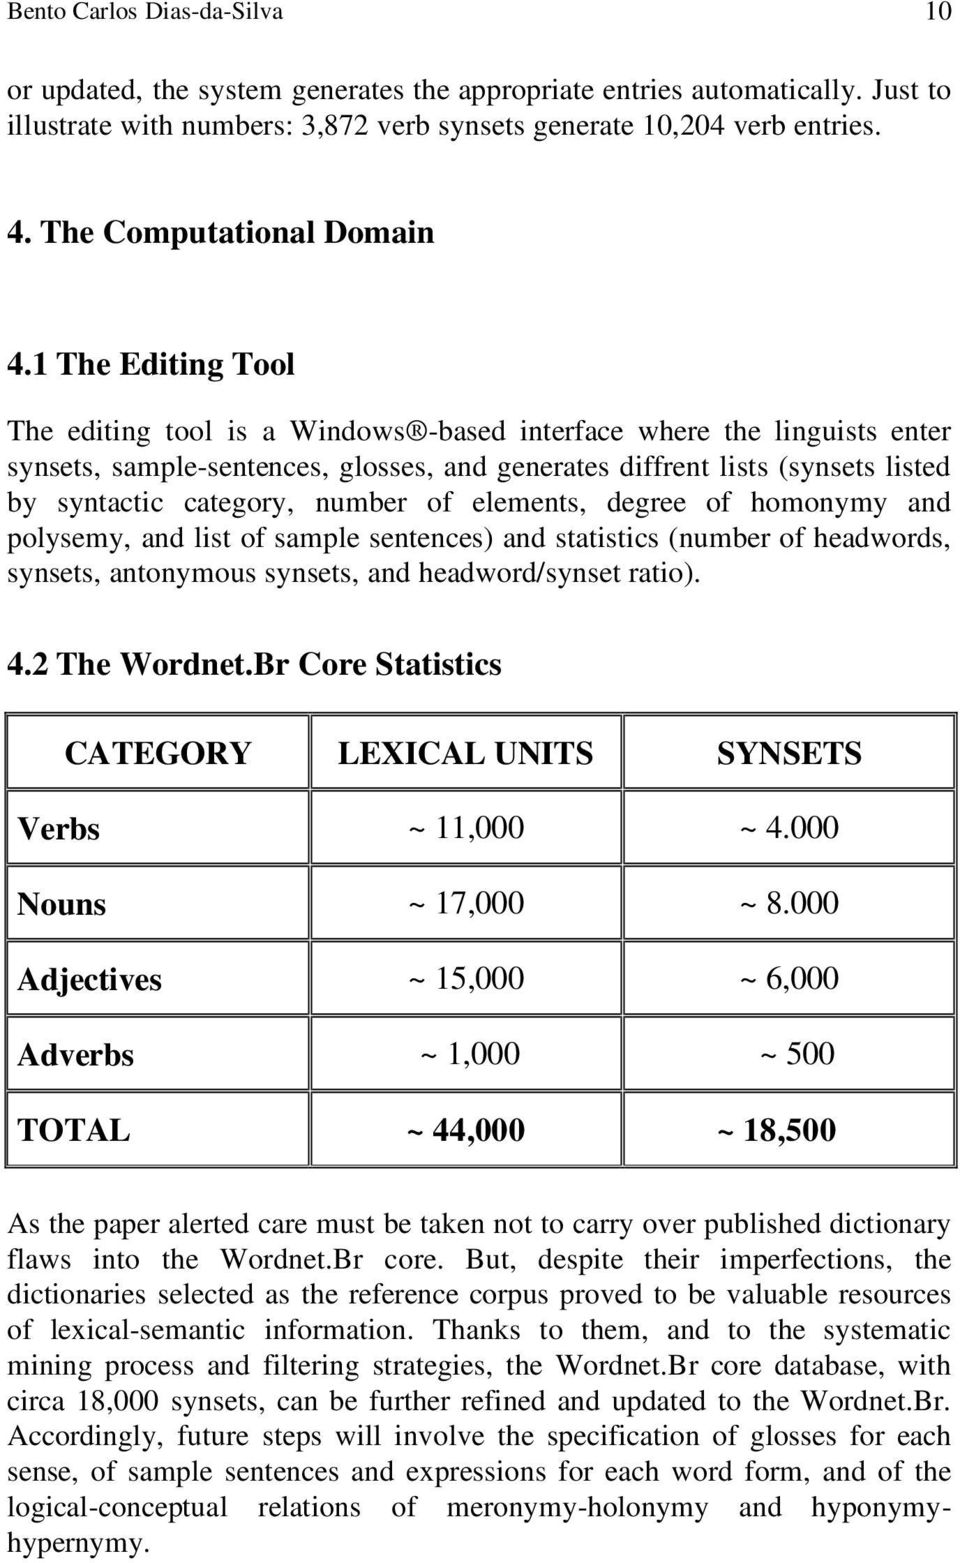 1 The Editing Tool The editing tool is a Windows -based interface where the linguists enter synsets, sample-sentences, glosses, and generates diffrent lists (synsets listed by syntactic category,